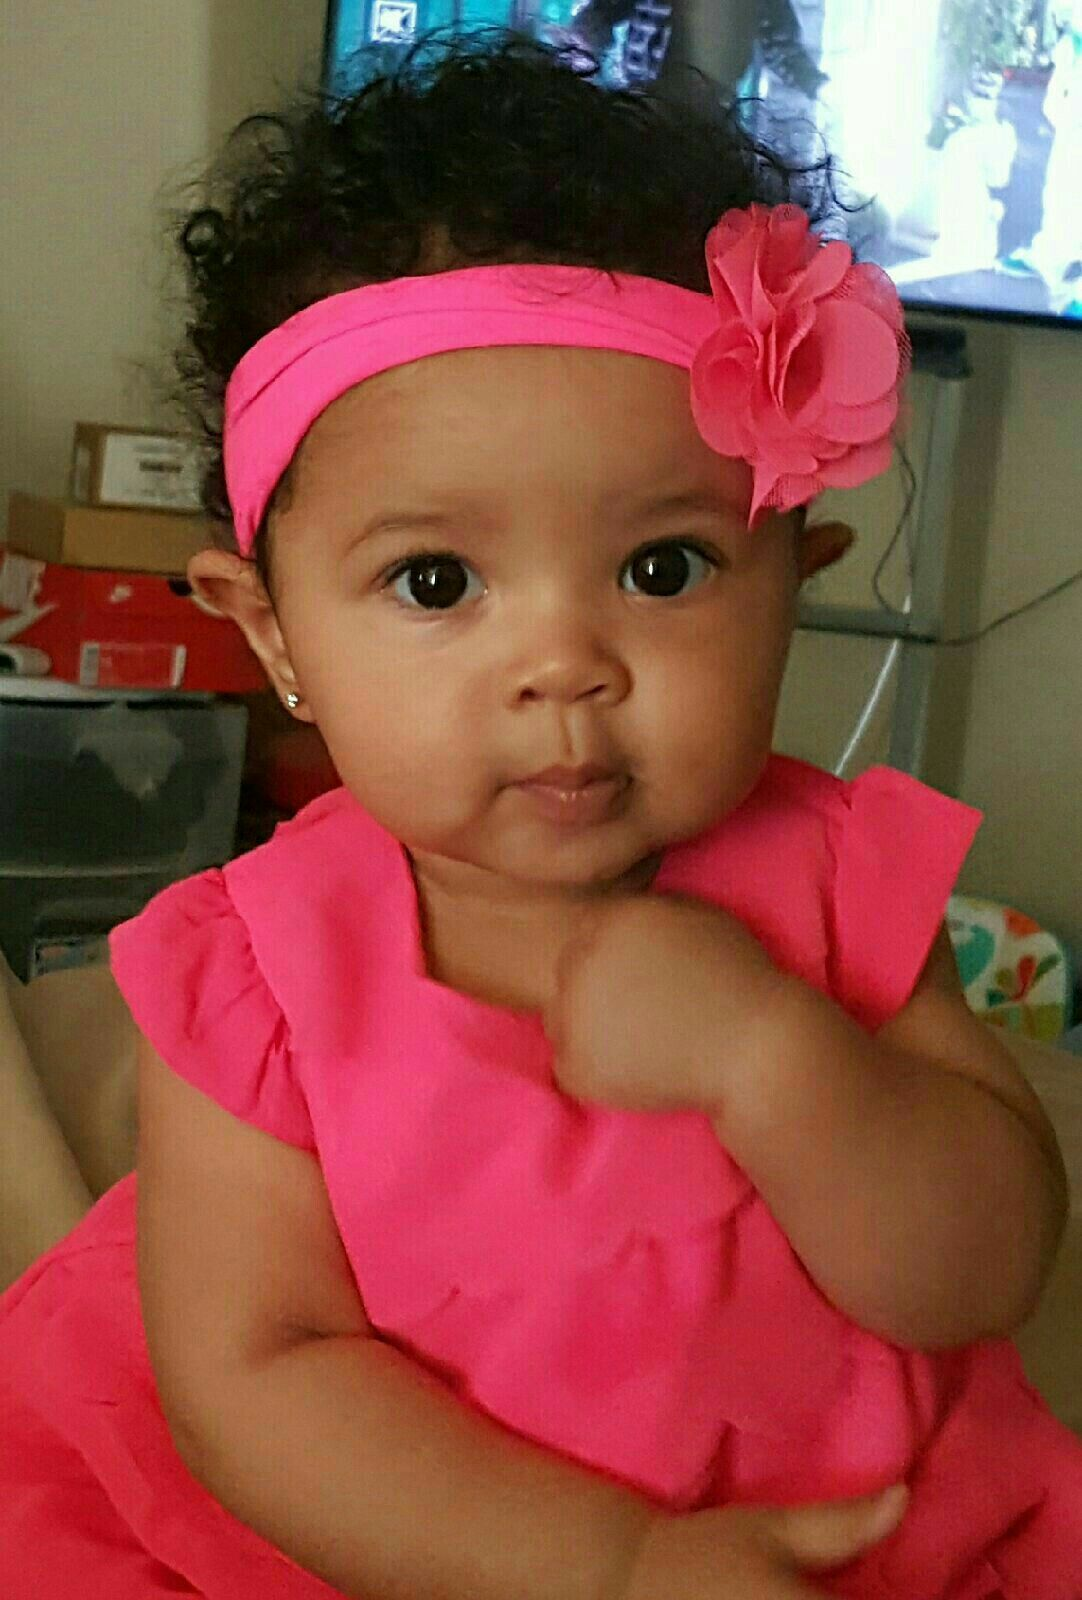 precious baby girl | whoa baby! | pinterest | babies, girls and baby